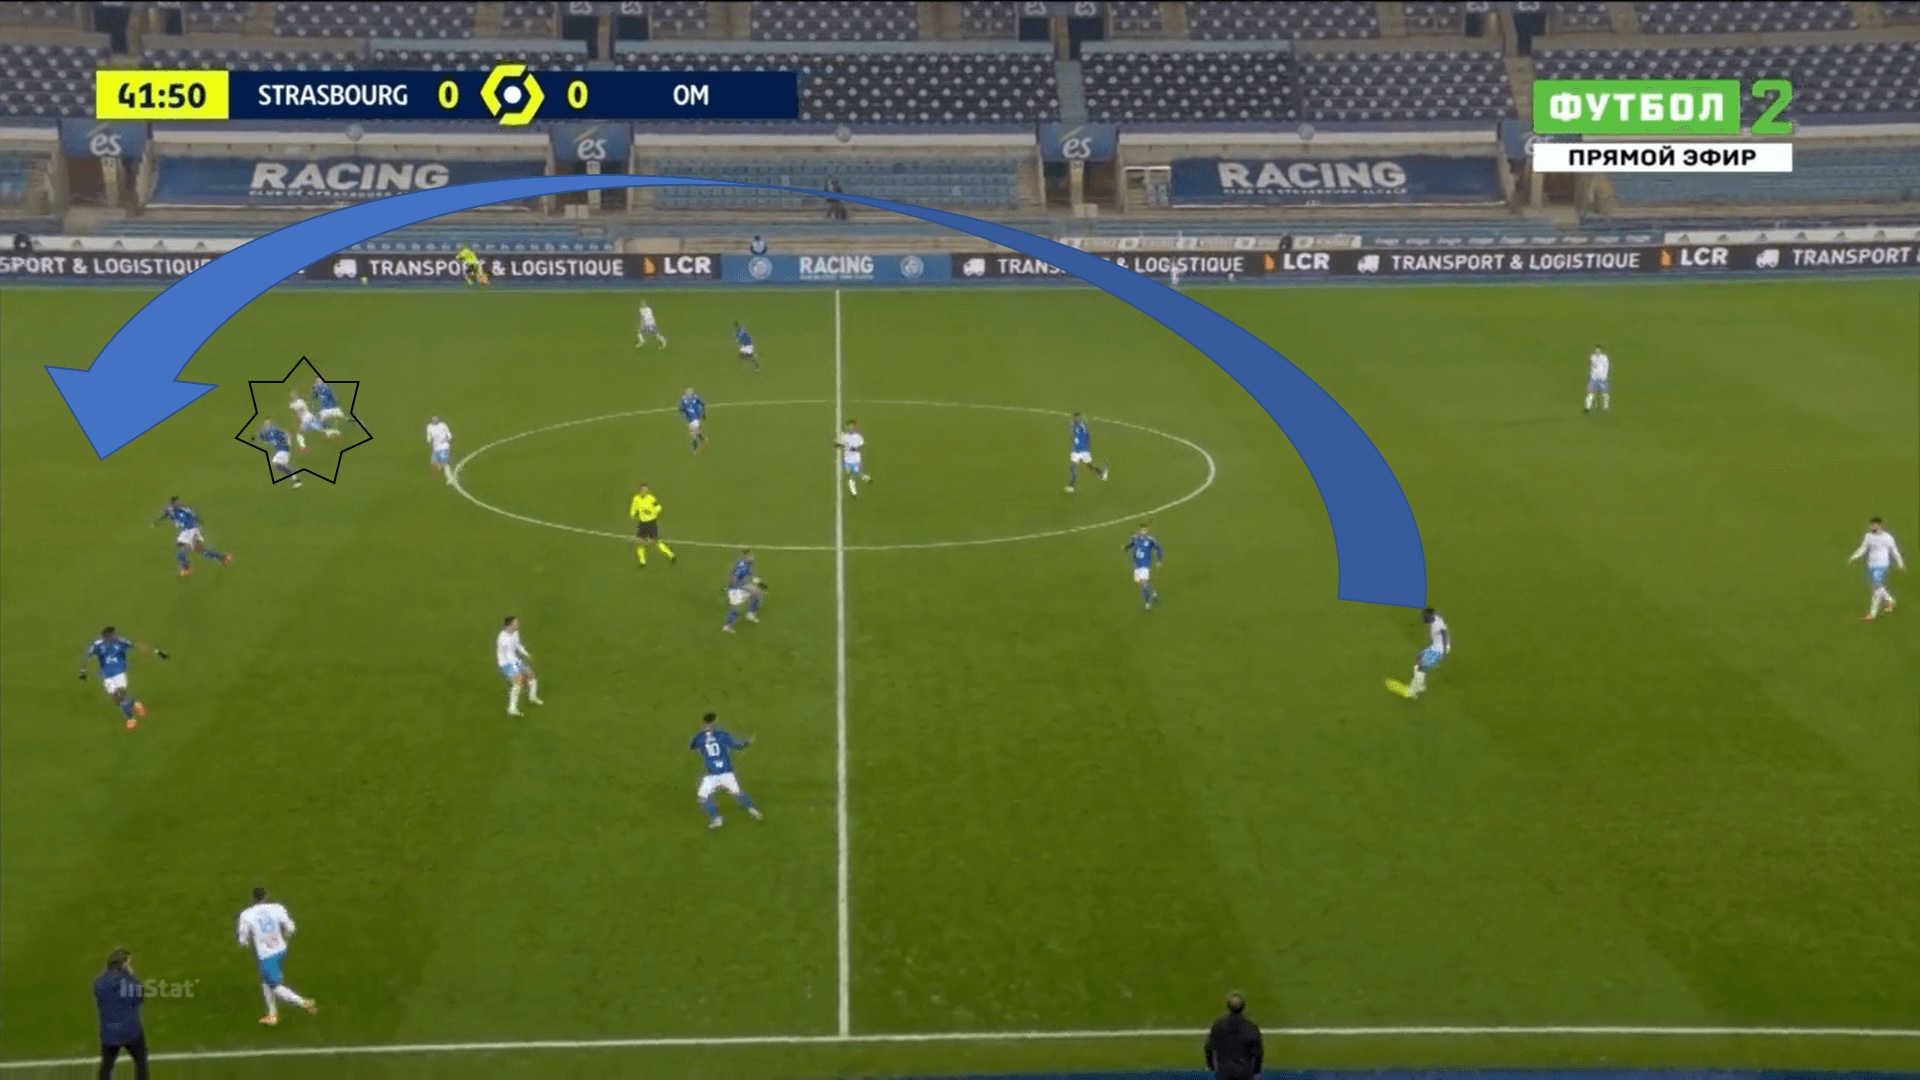 Ligue 1 2020/21: Strasbourg vs Marseille - tactical analysis tactics